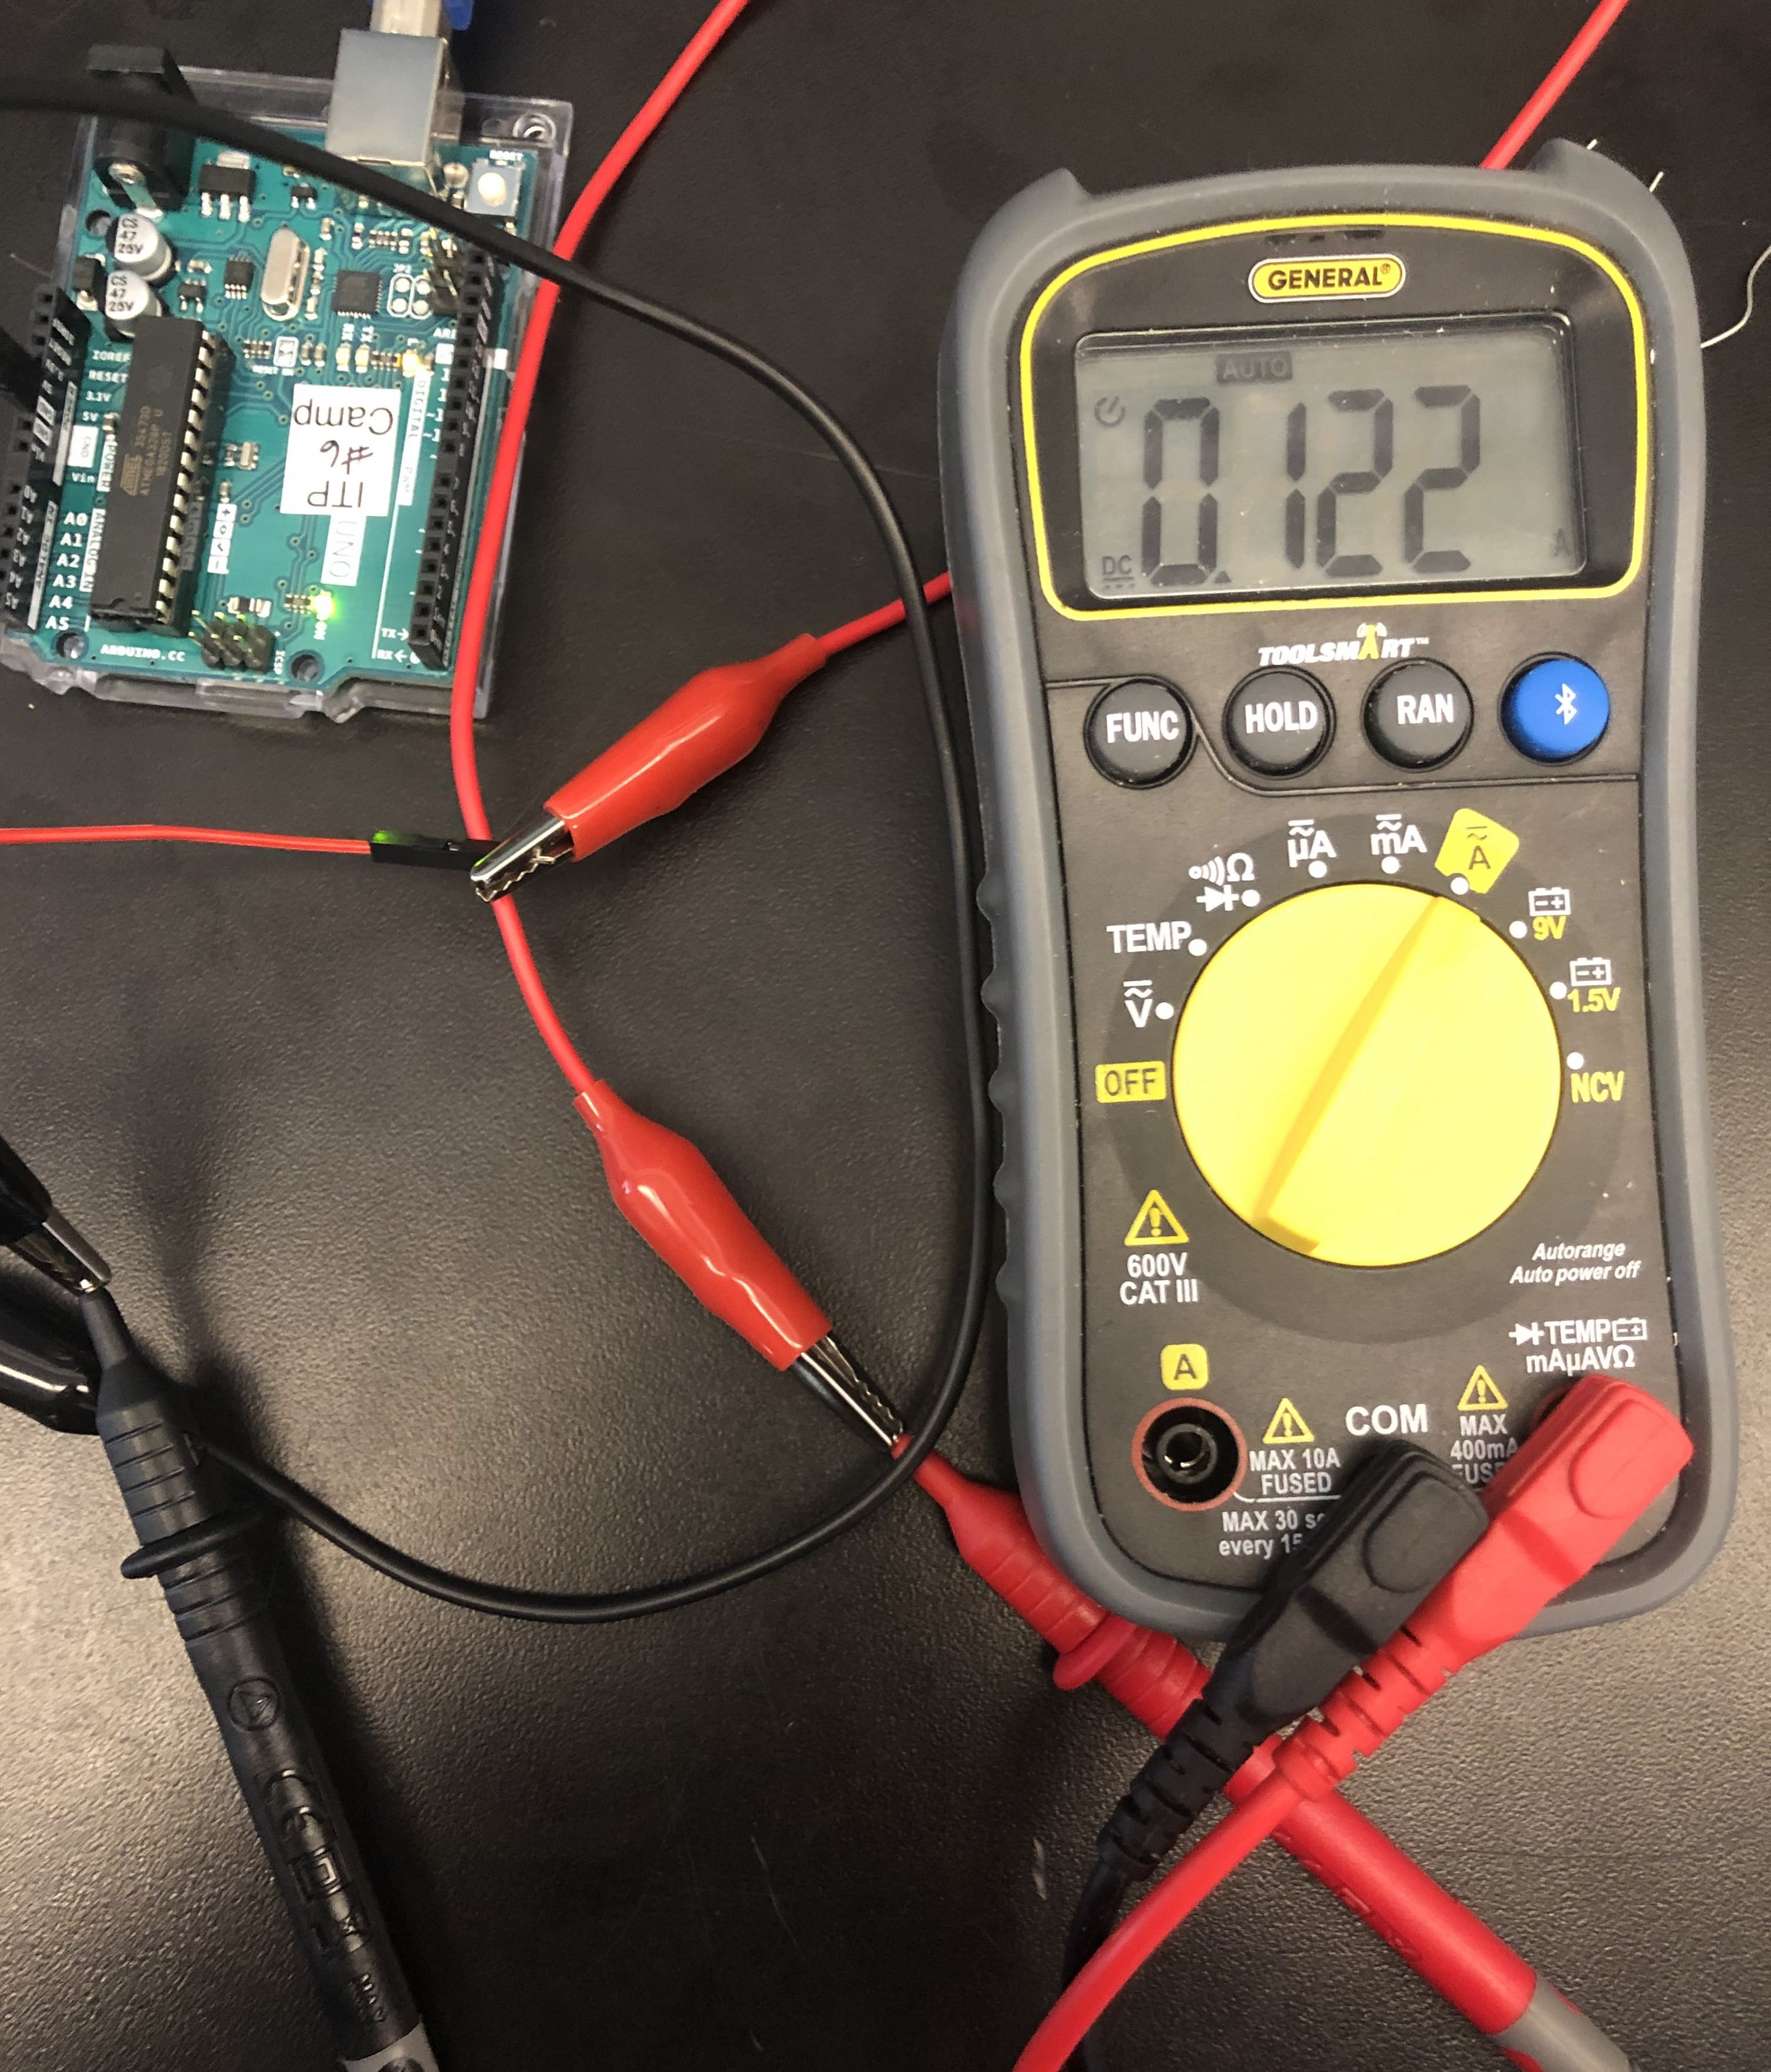 a multimeter showing 0.123 amps